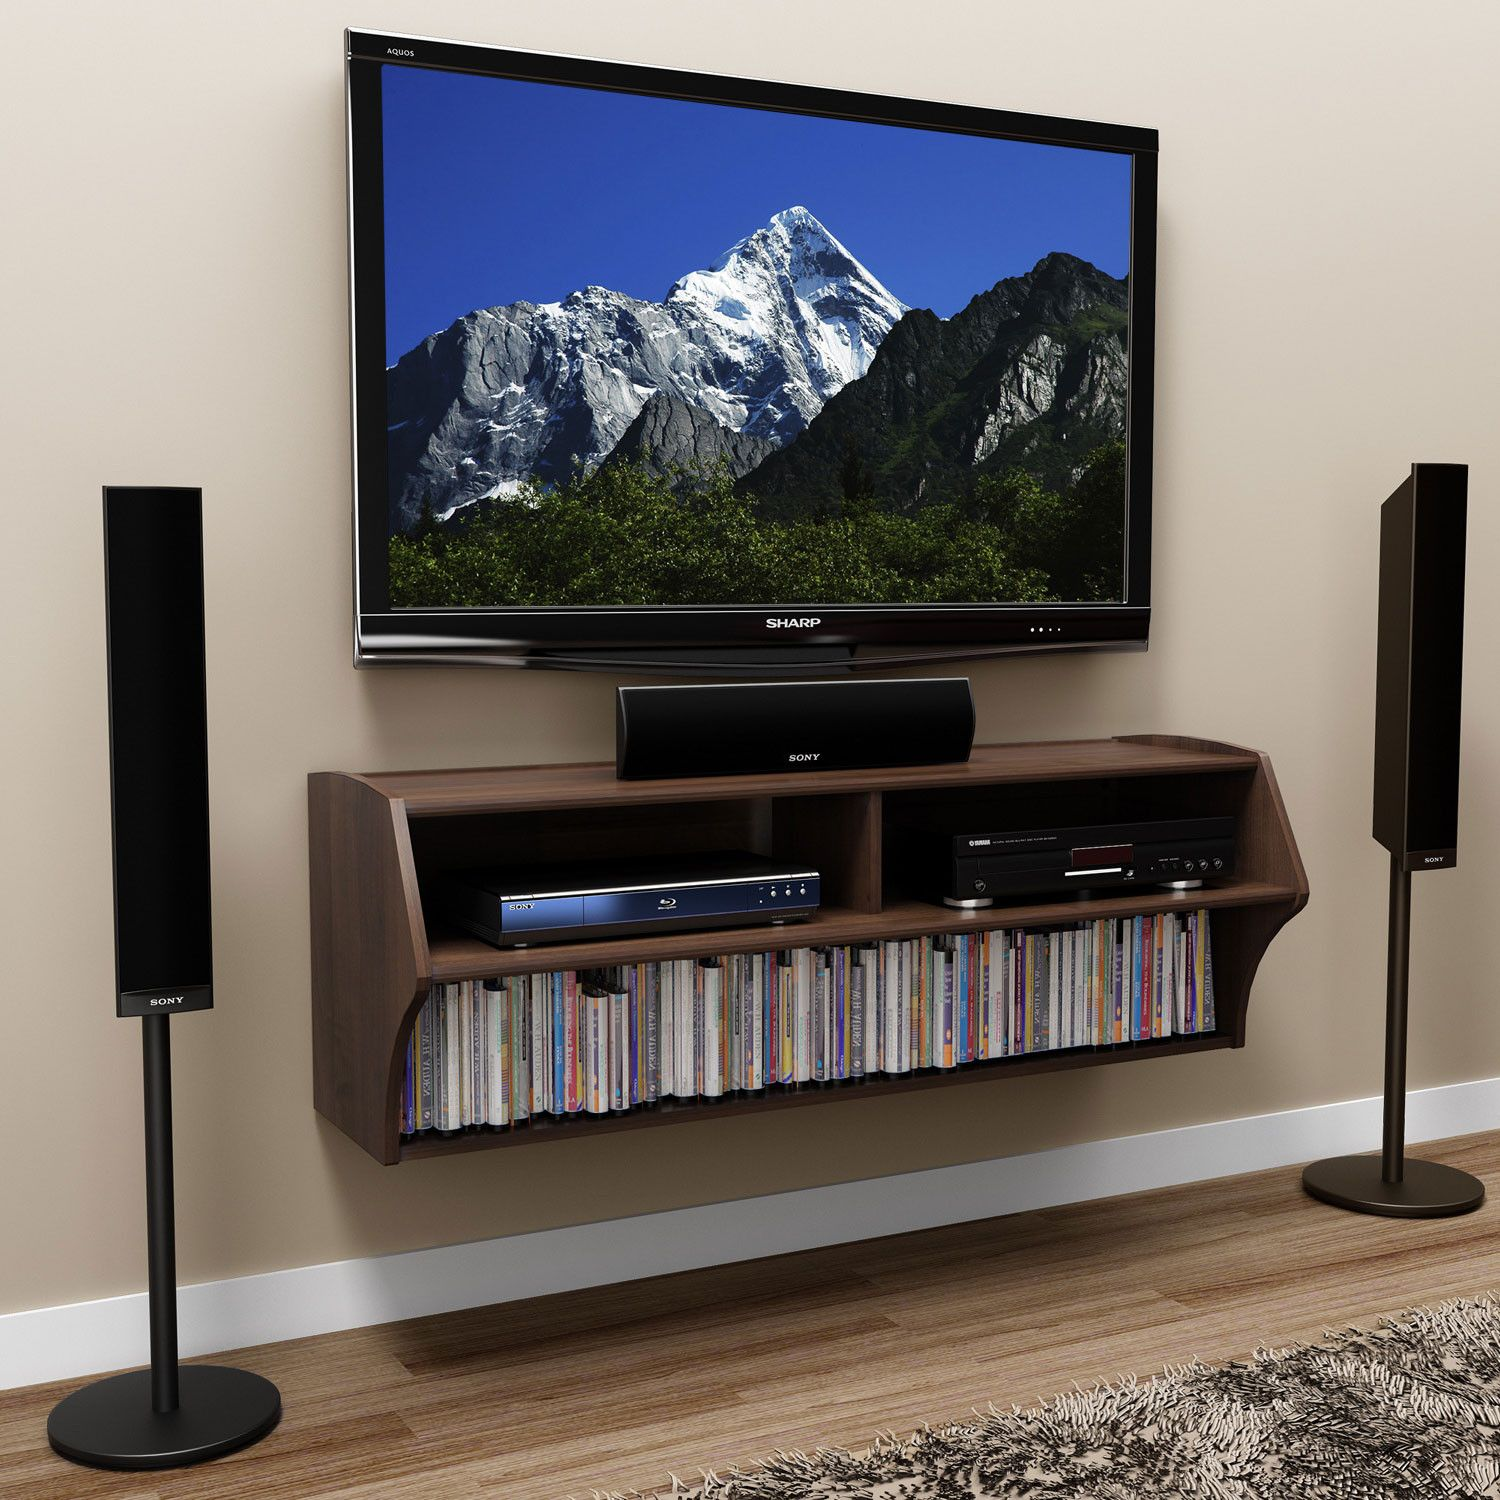 20 Wall Mounted Audio Video Cabinet Kitchen Counter Top Ideas Check More At Http Www Wall Mount Entertainment Center Wall Mount Tv Stand Floating Tv Stand